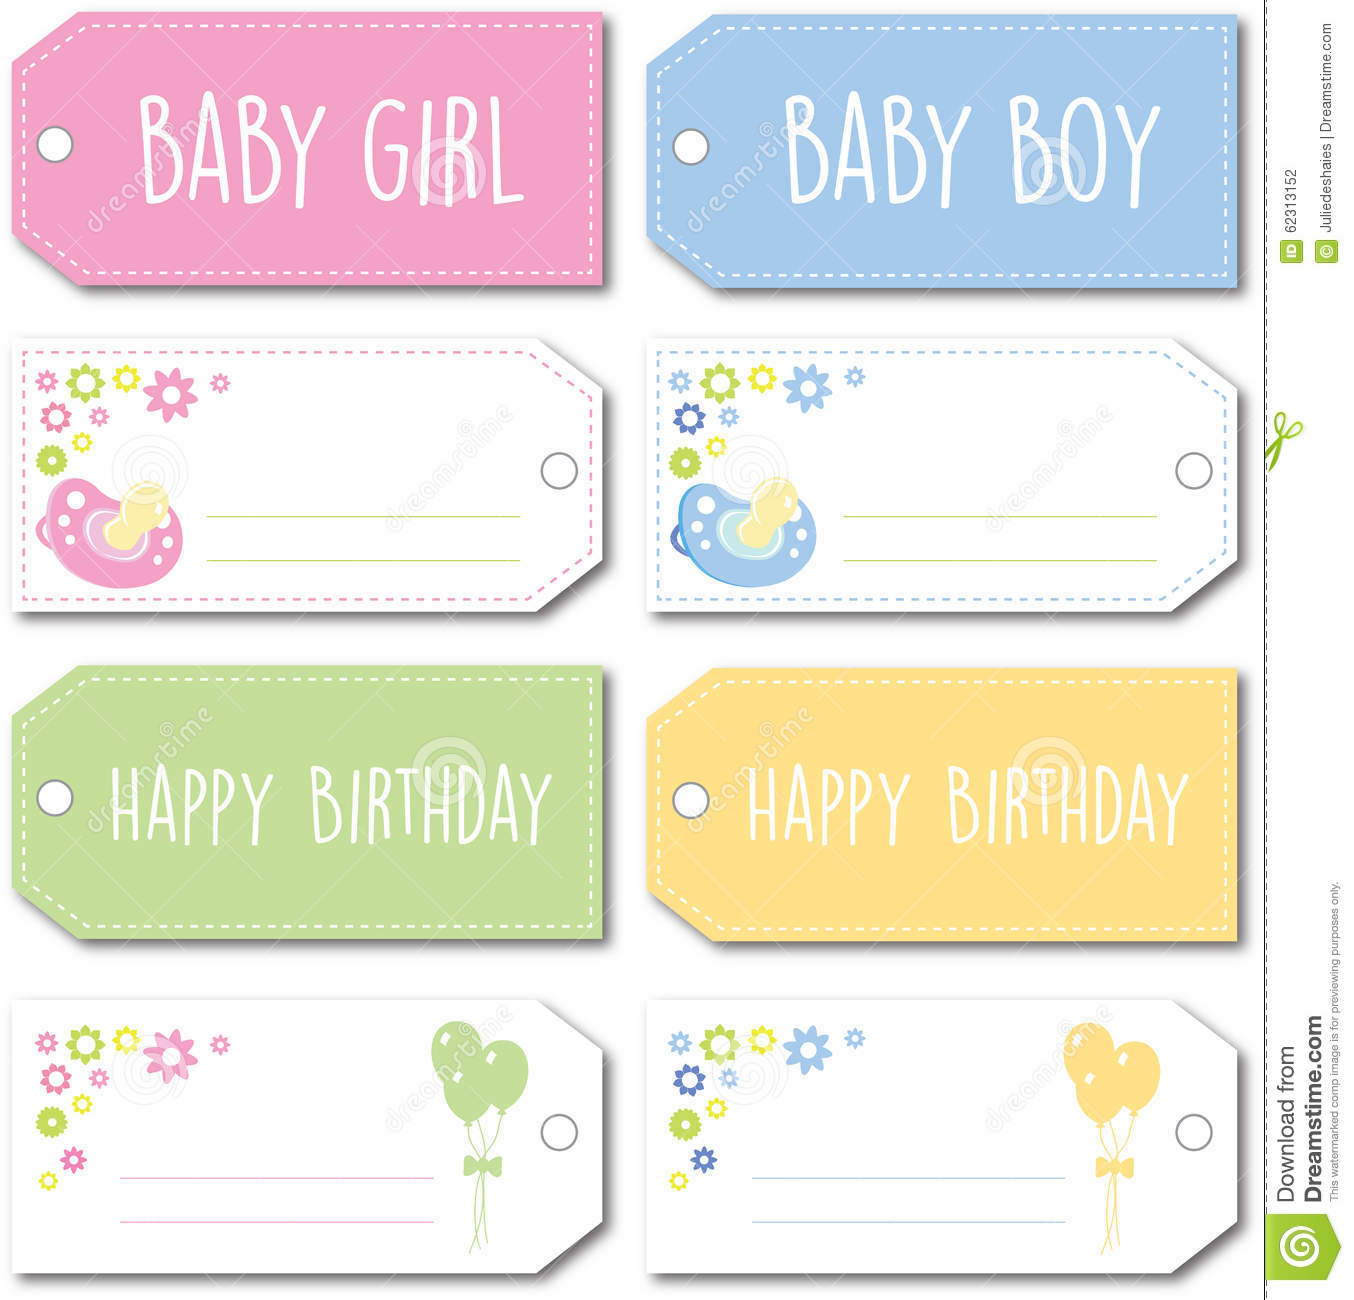 Baby Gift Vector : Newborn baby gift tag stock vector image of male girl